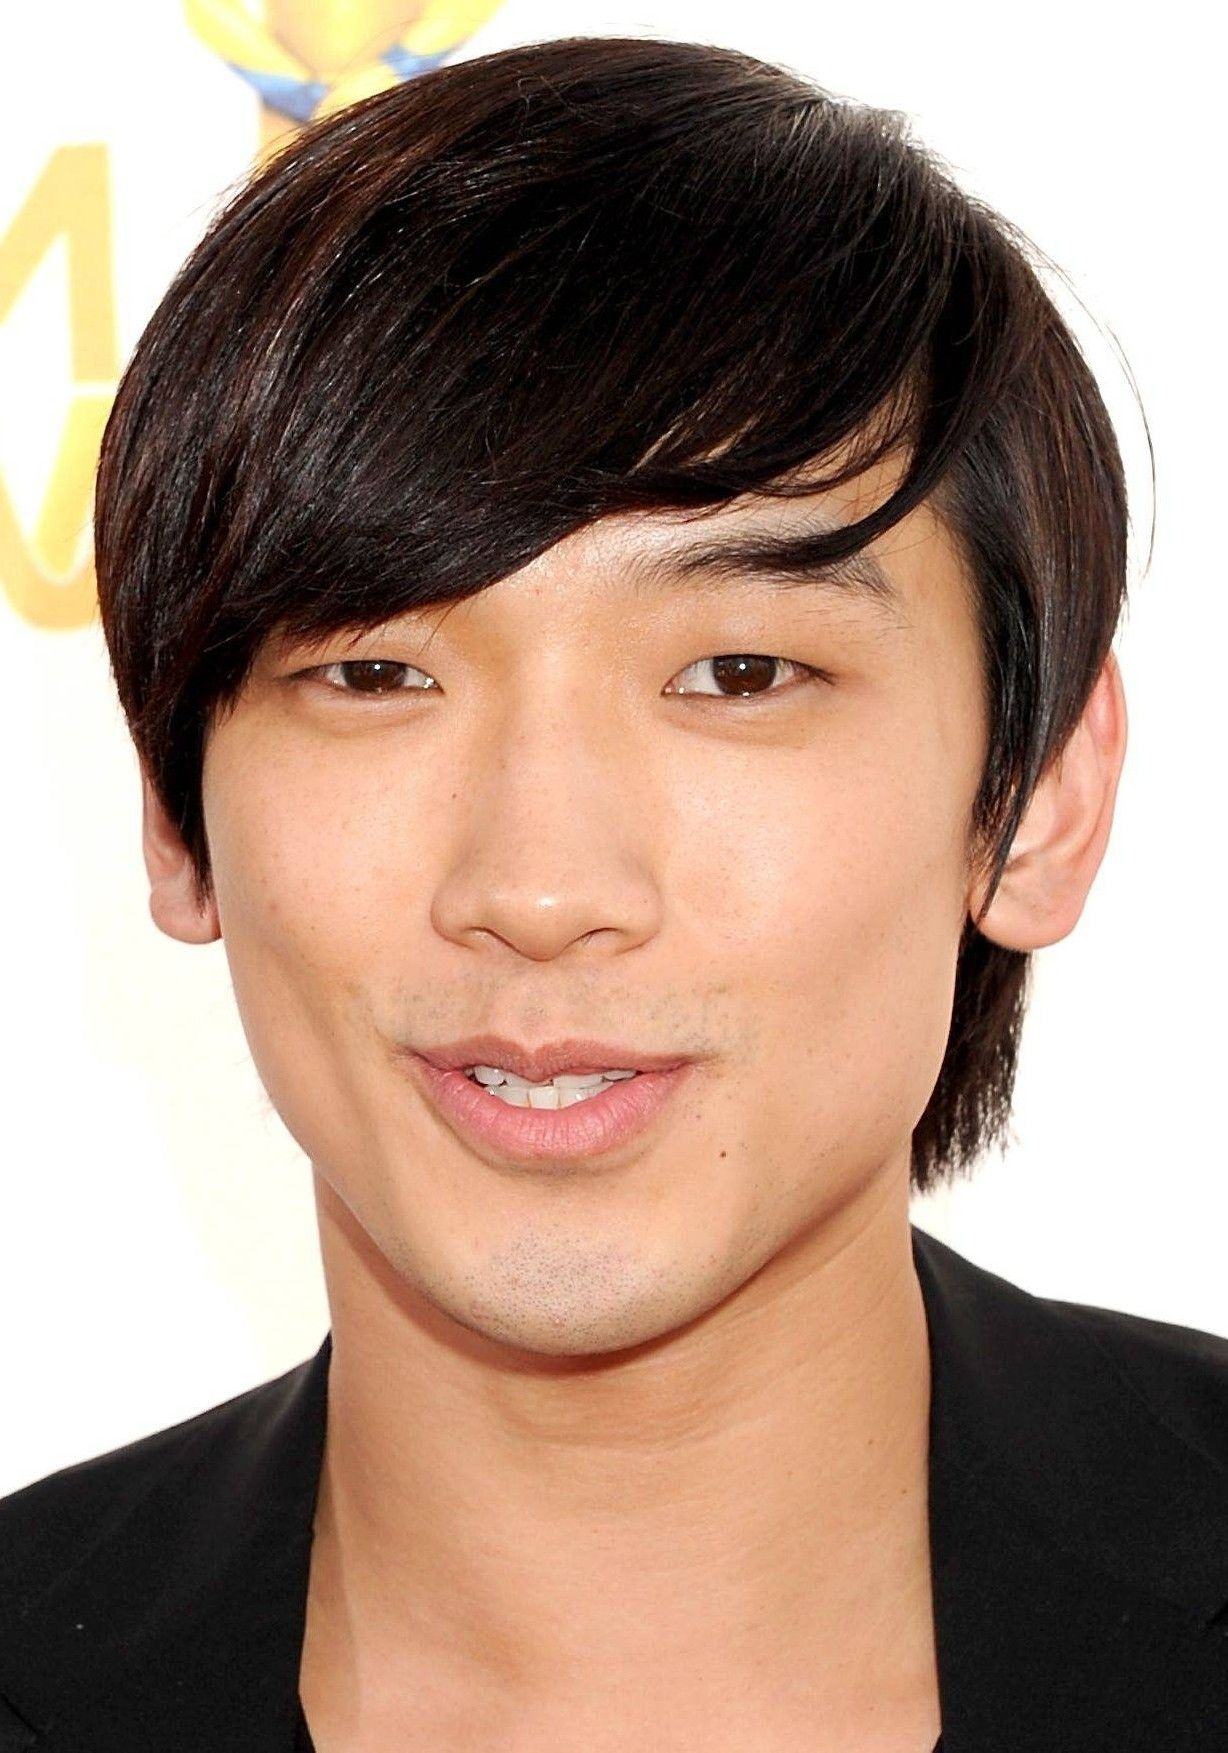 15 Remarkable Asian Hairstyles for Men